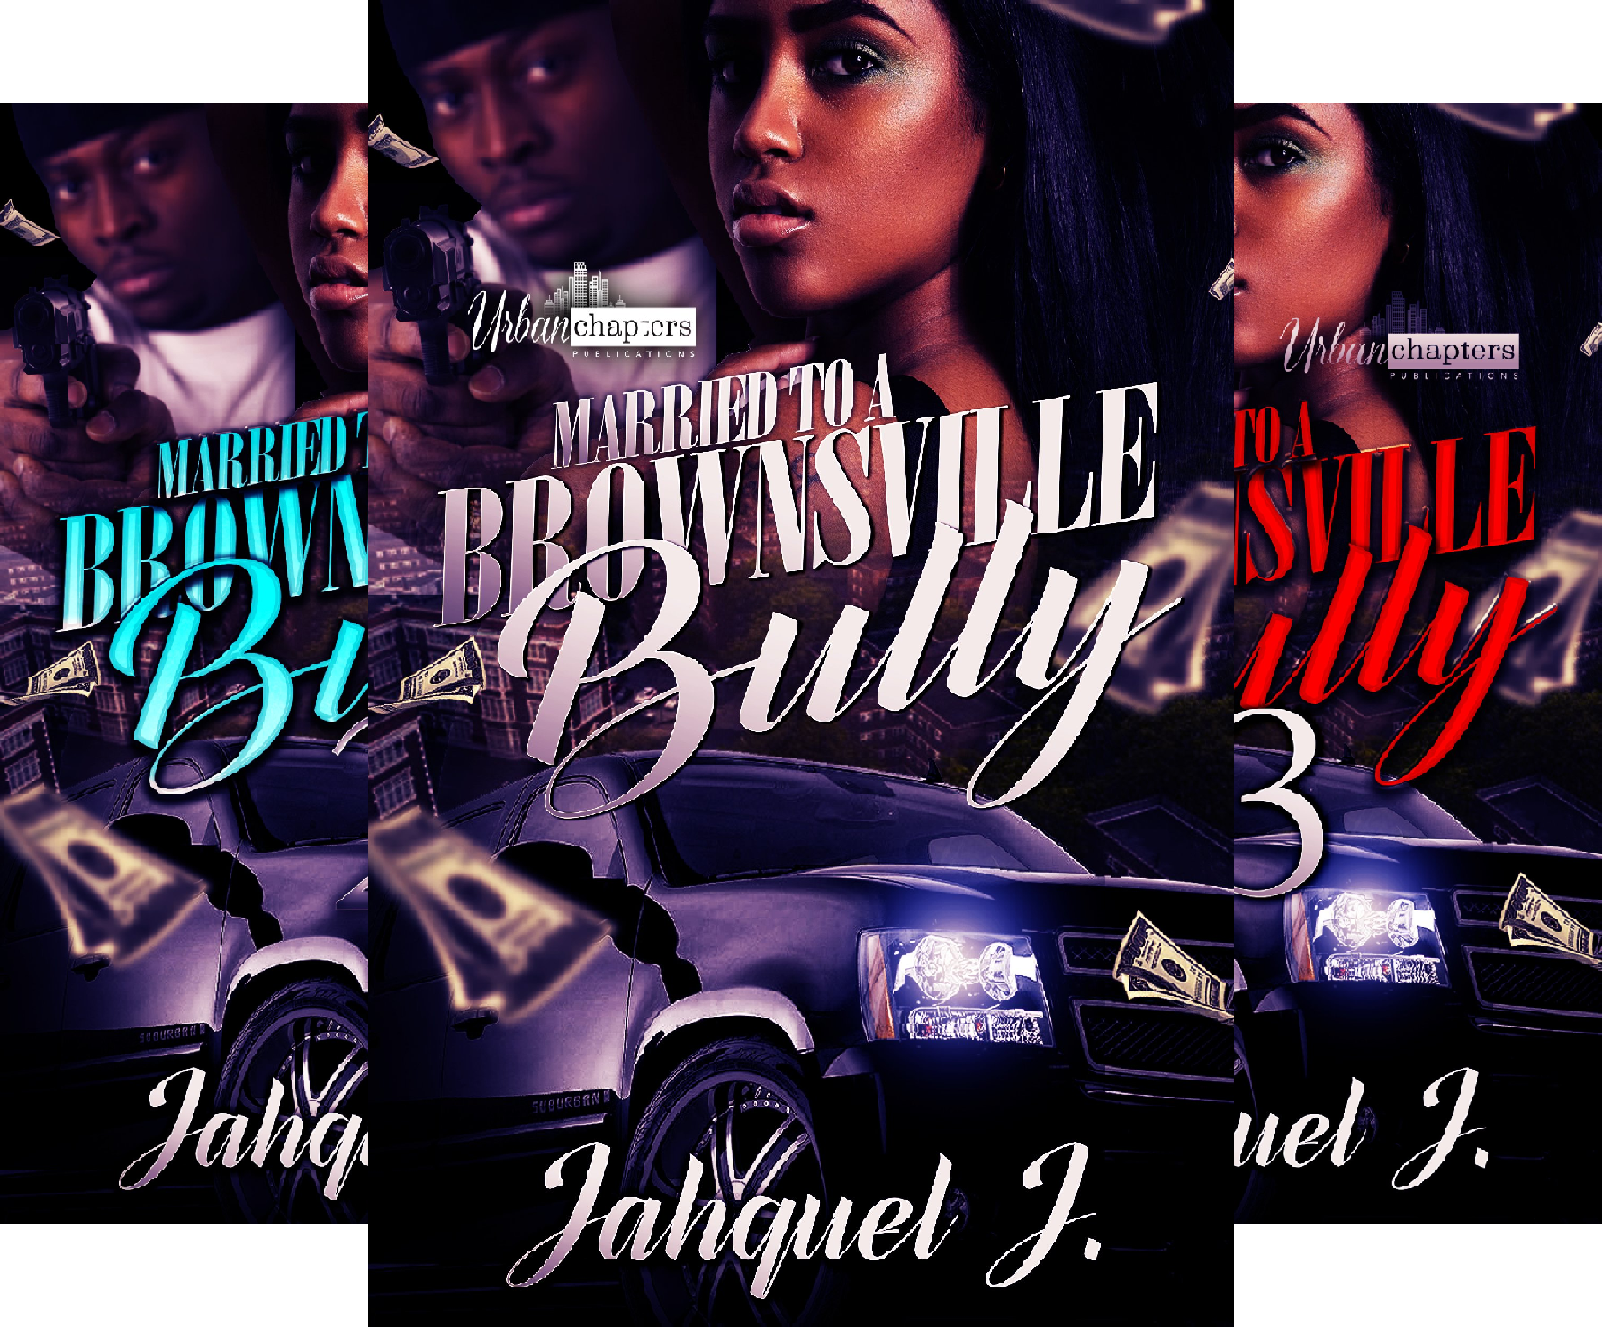 Married To A Brownsville Bully (3 Book Series)